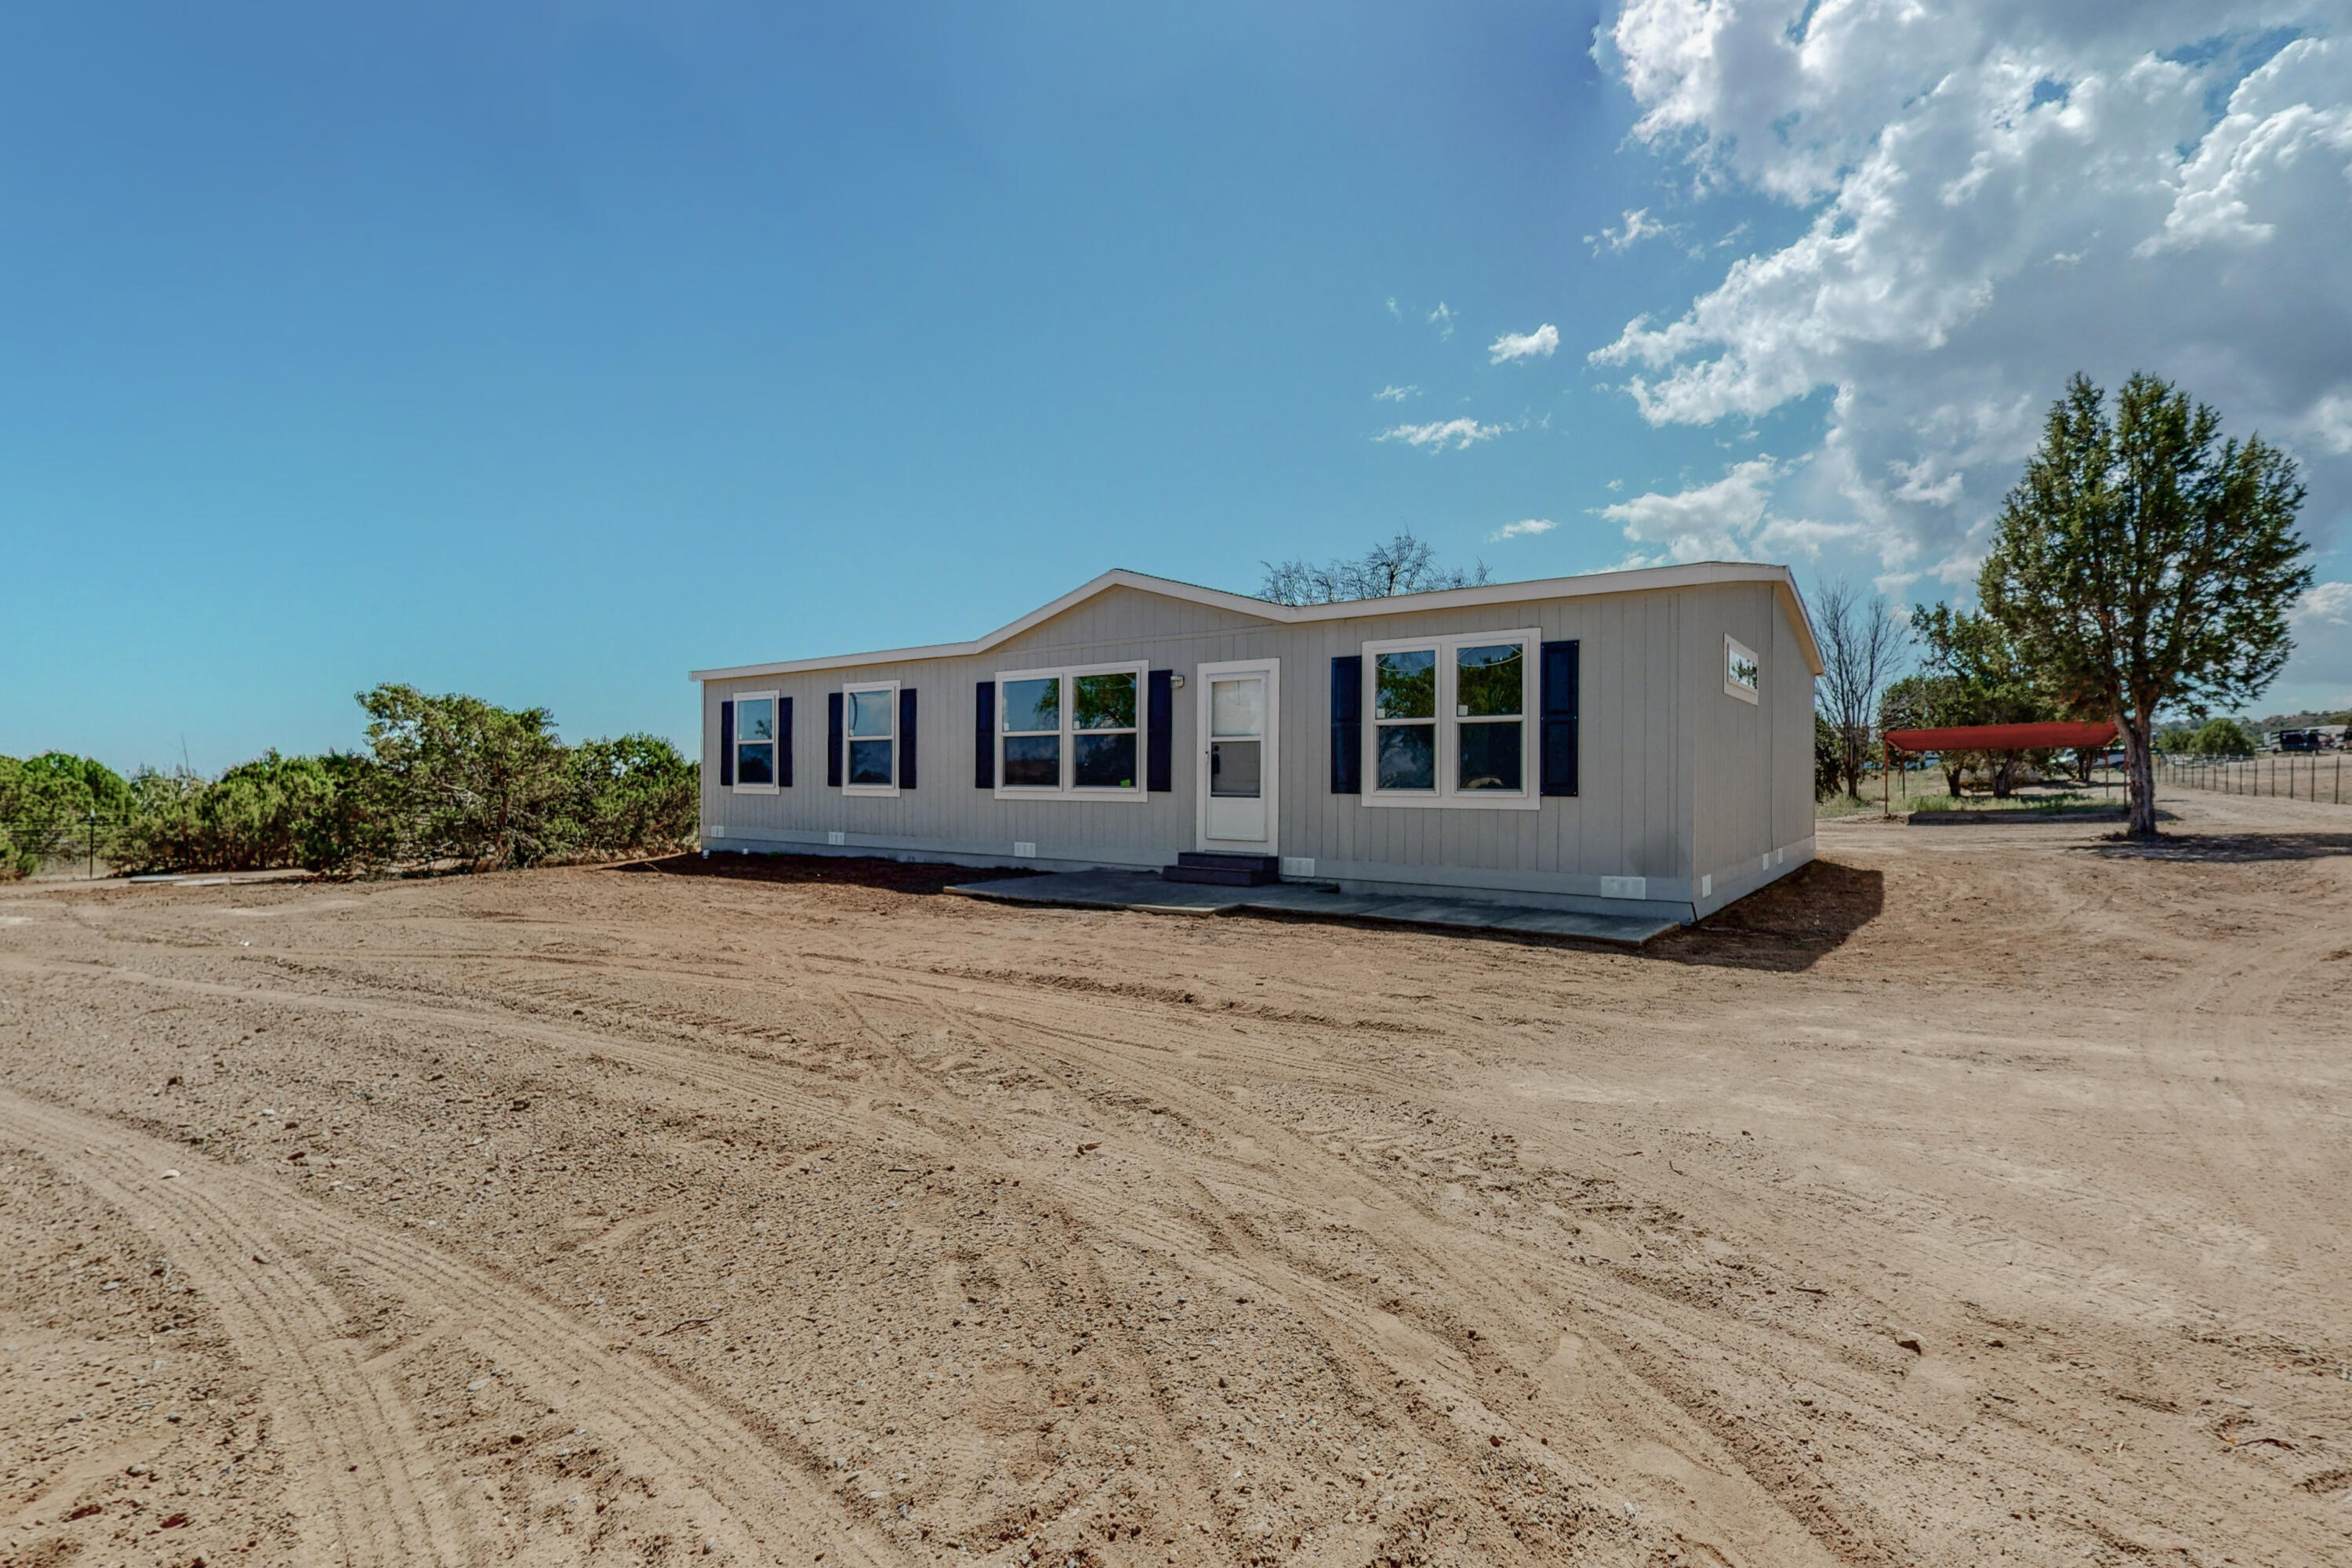 BRAND NEW, Gorgeous Cavco MF Home on just over an acre, completely fenced, 2 Storage Sheds, Underground Root cellar, Carport. Permanent Ground Set Foundation, Ready for financing.  Open style floorplan with Large Island in the Kitchen and a huge pantry. Master Suite has beautiful bath with Spacious Closet. Right in the Heart of Edgewood.  Just off the pavement.